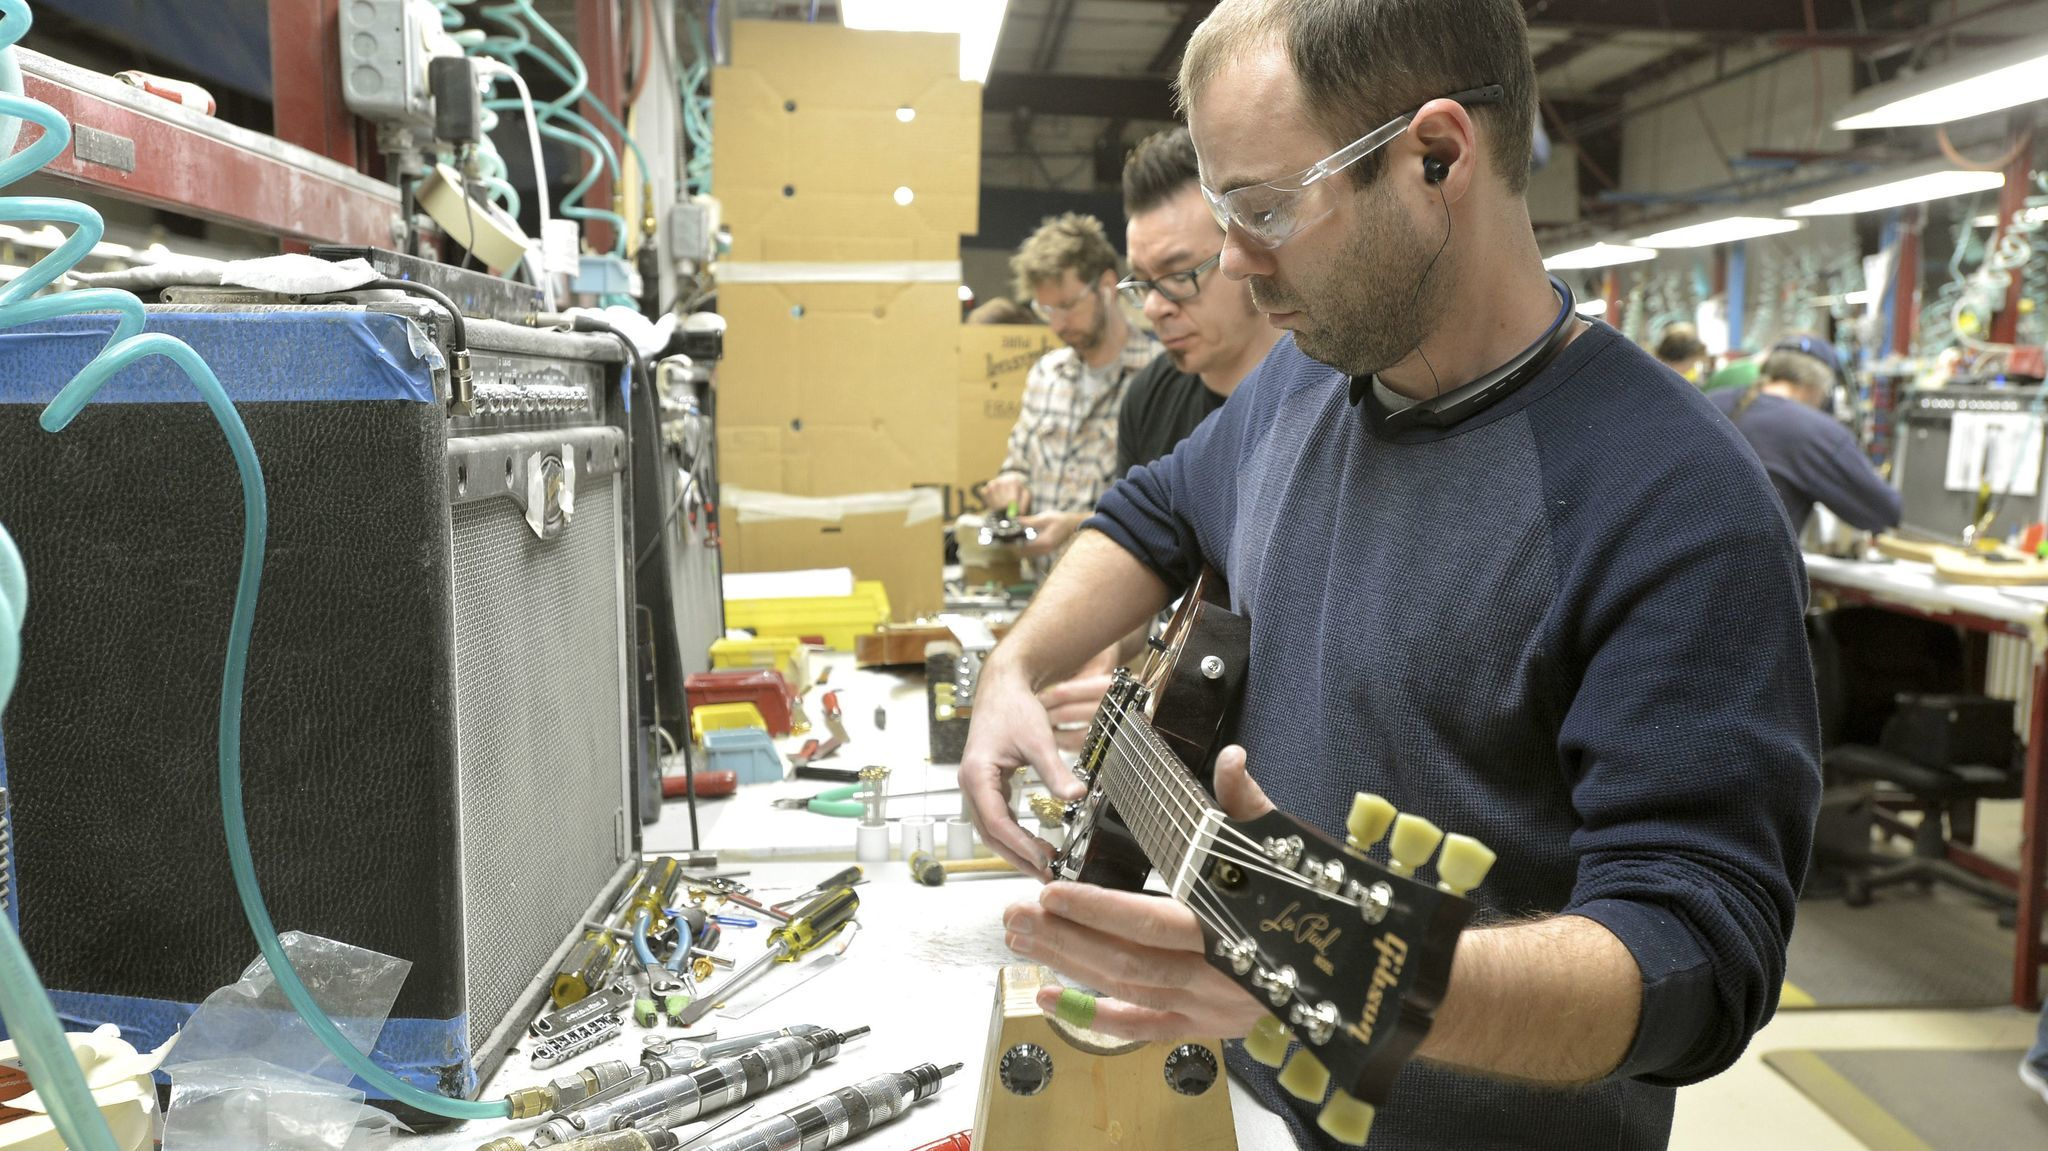 Loren Amsbary makes final adjustments on new guitar at the Gibson guitar manufacturing plant.